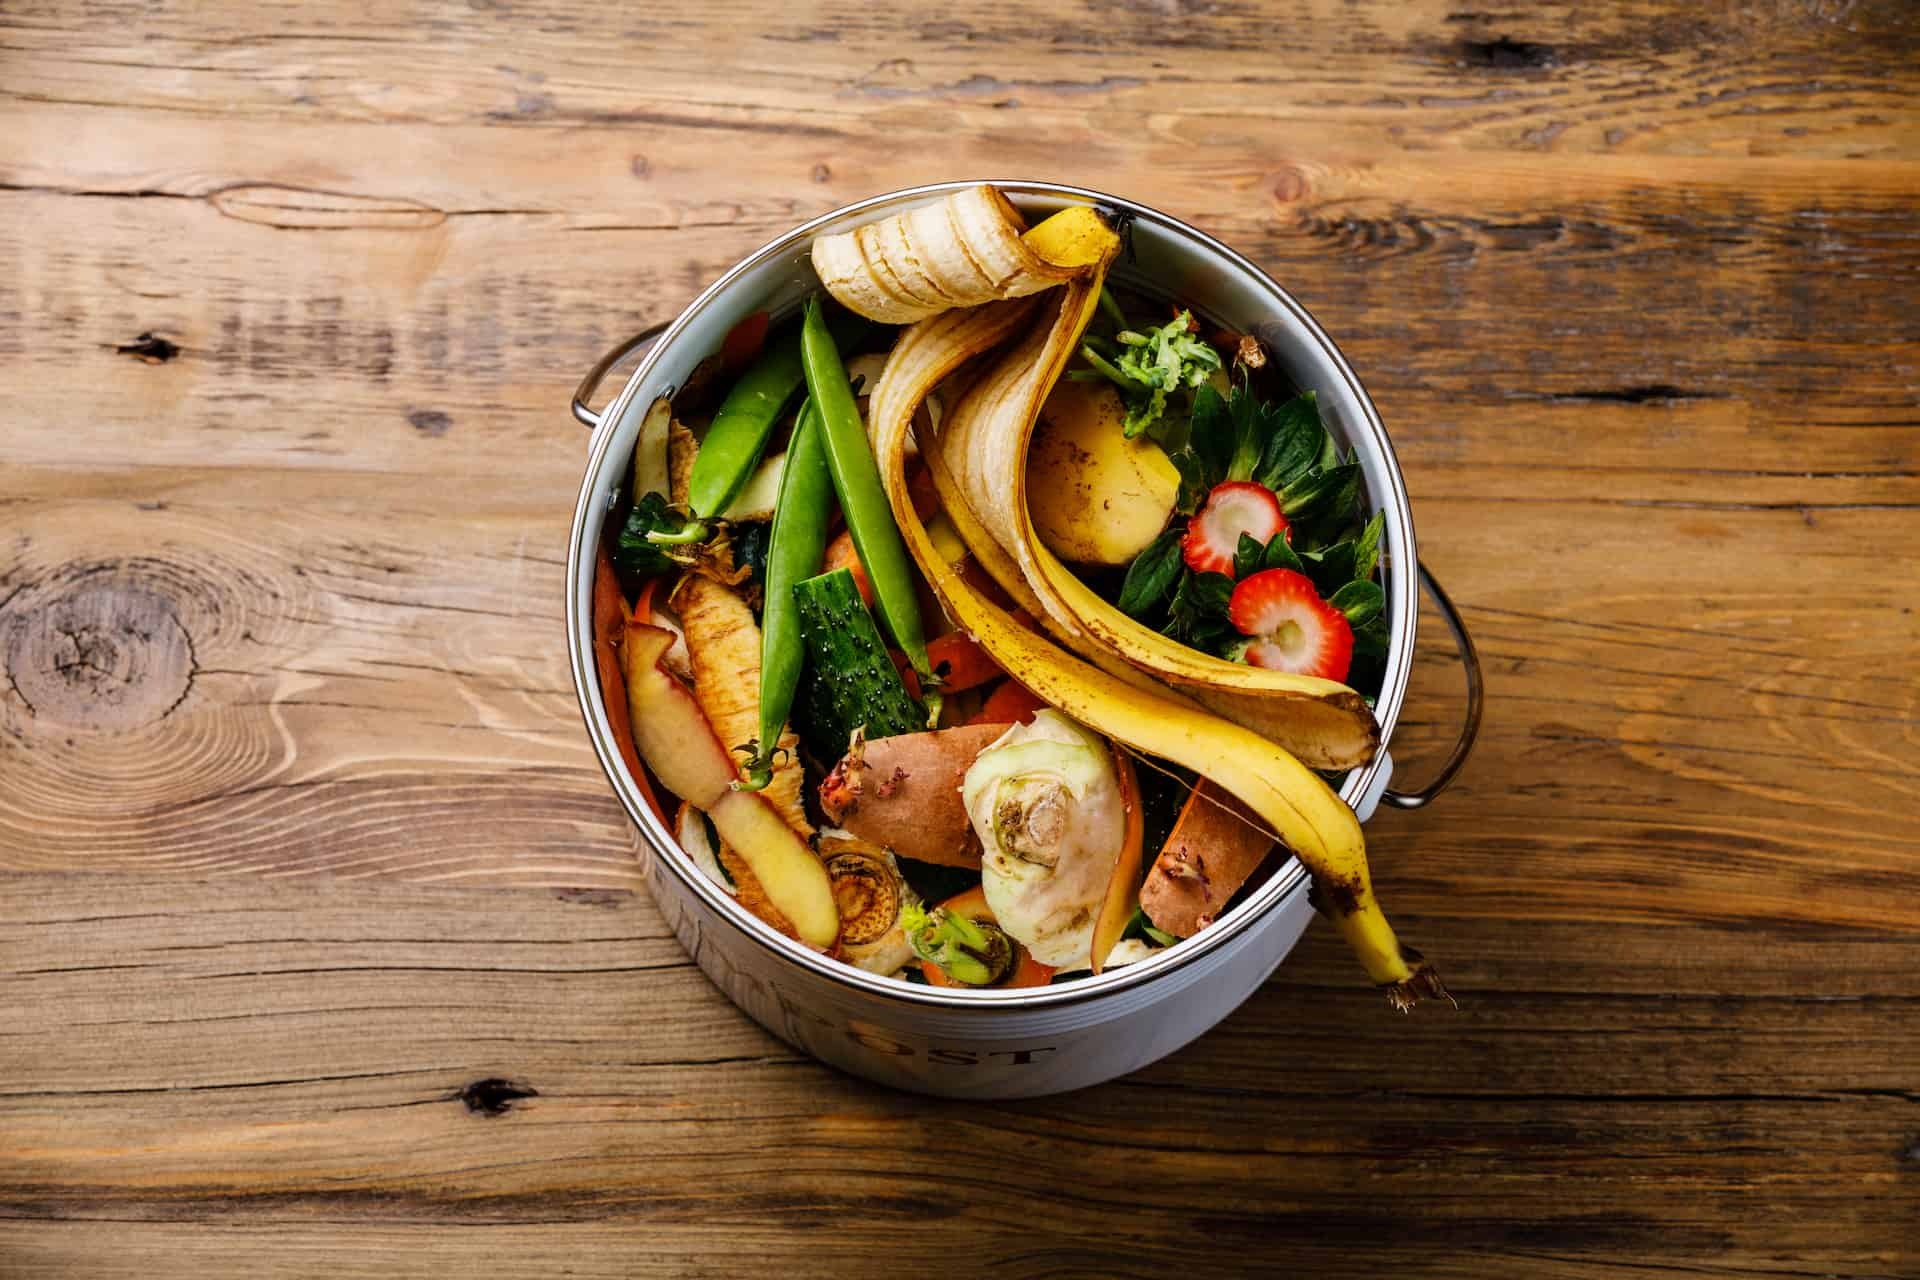 Composting 101 - A Guide for Beginners